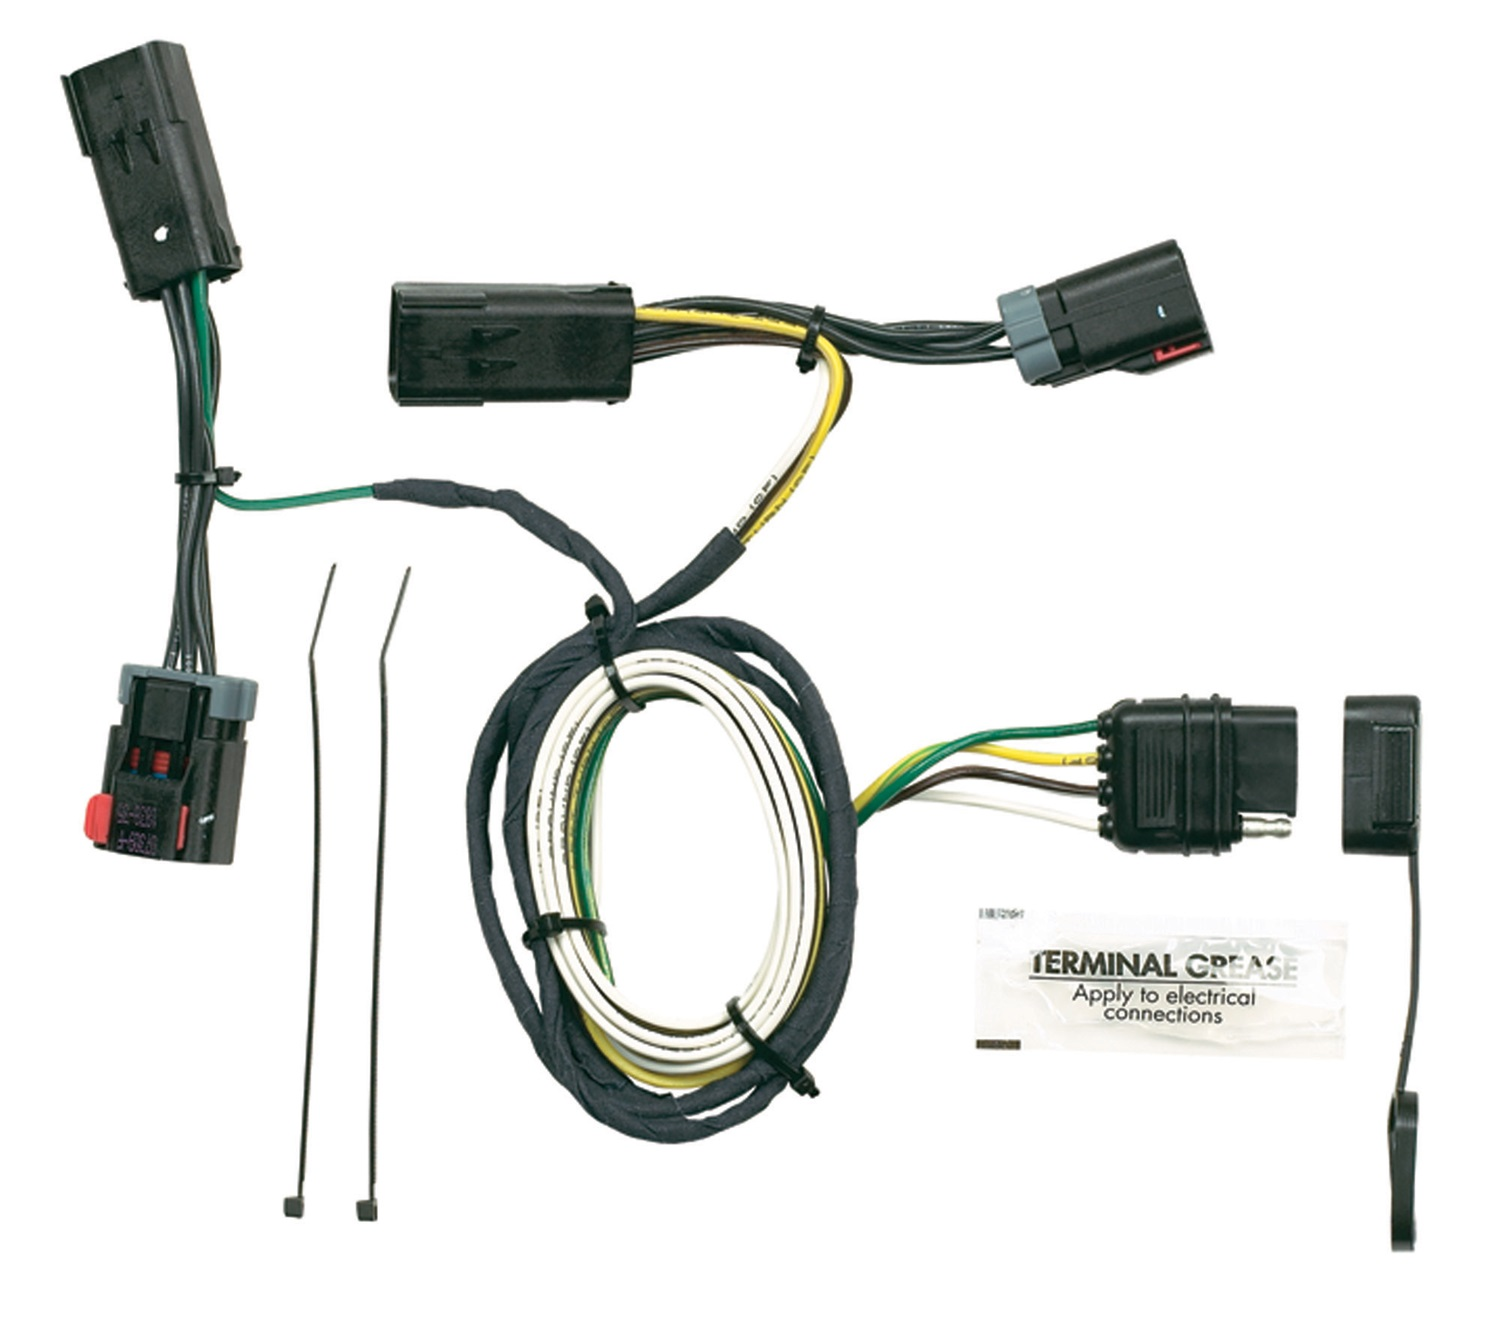 hopkins wiring harnesses towing solutions trailer harness kit 2004 honda civic ac diagram solution 42235 plug in simple vehicle to